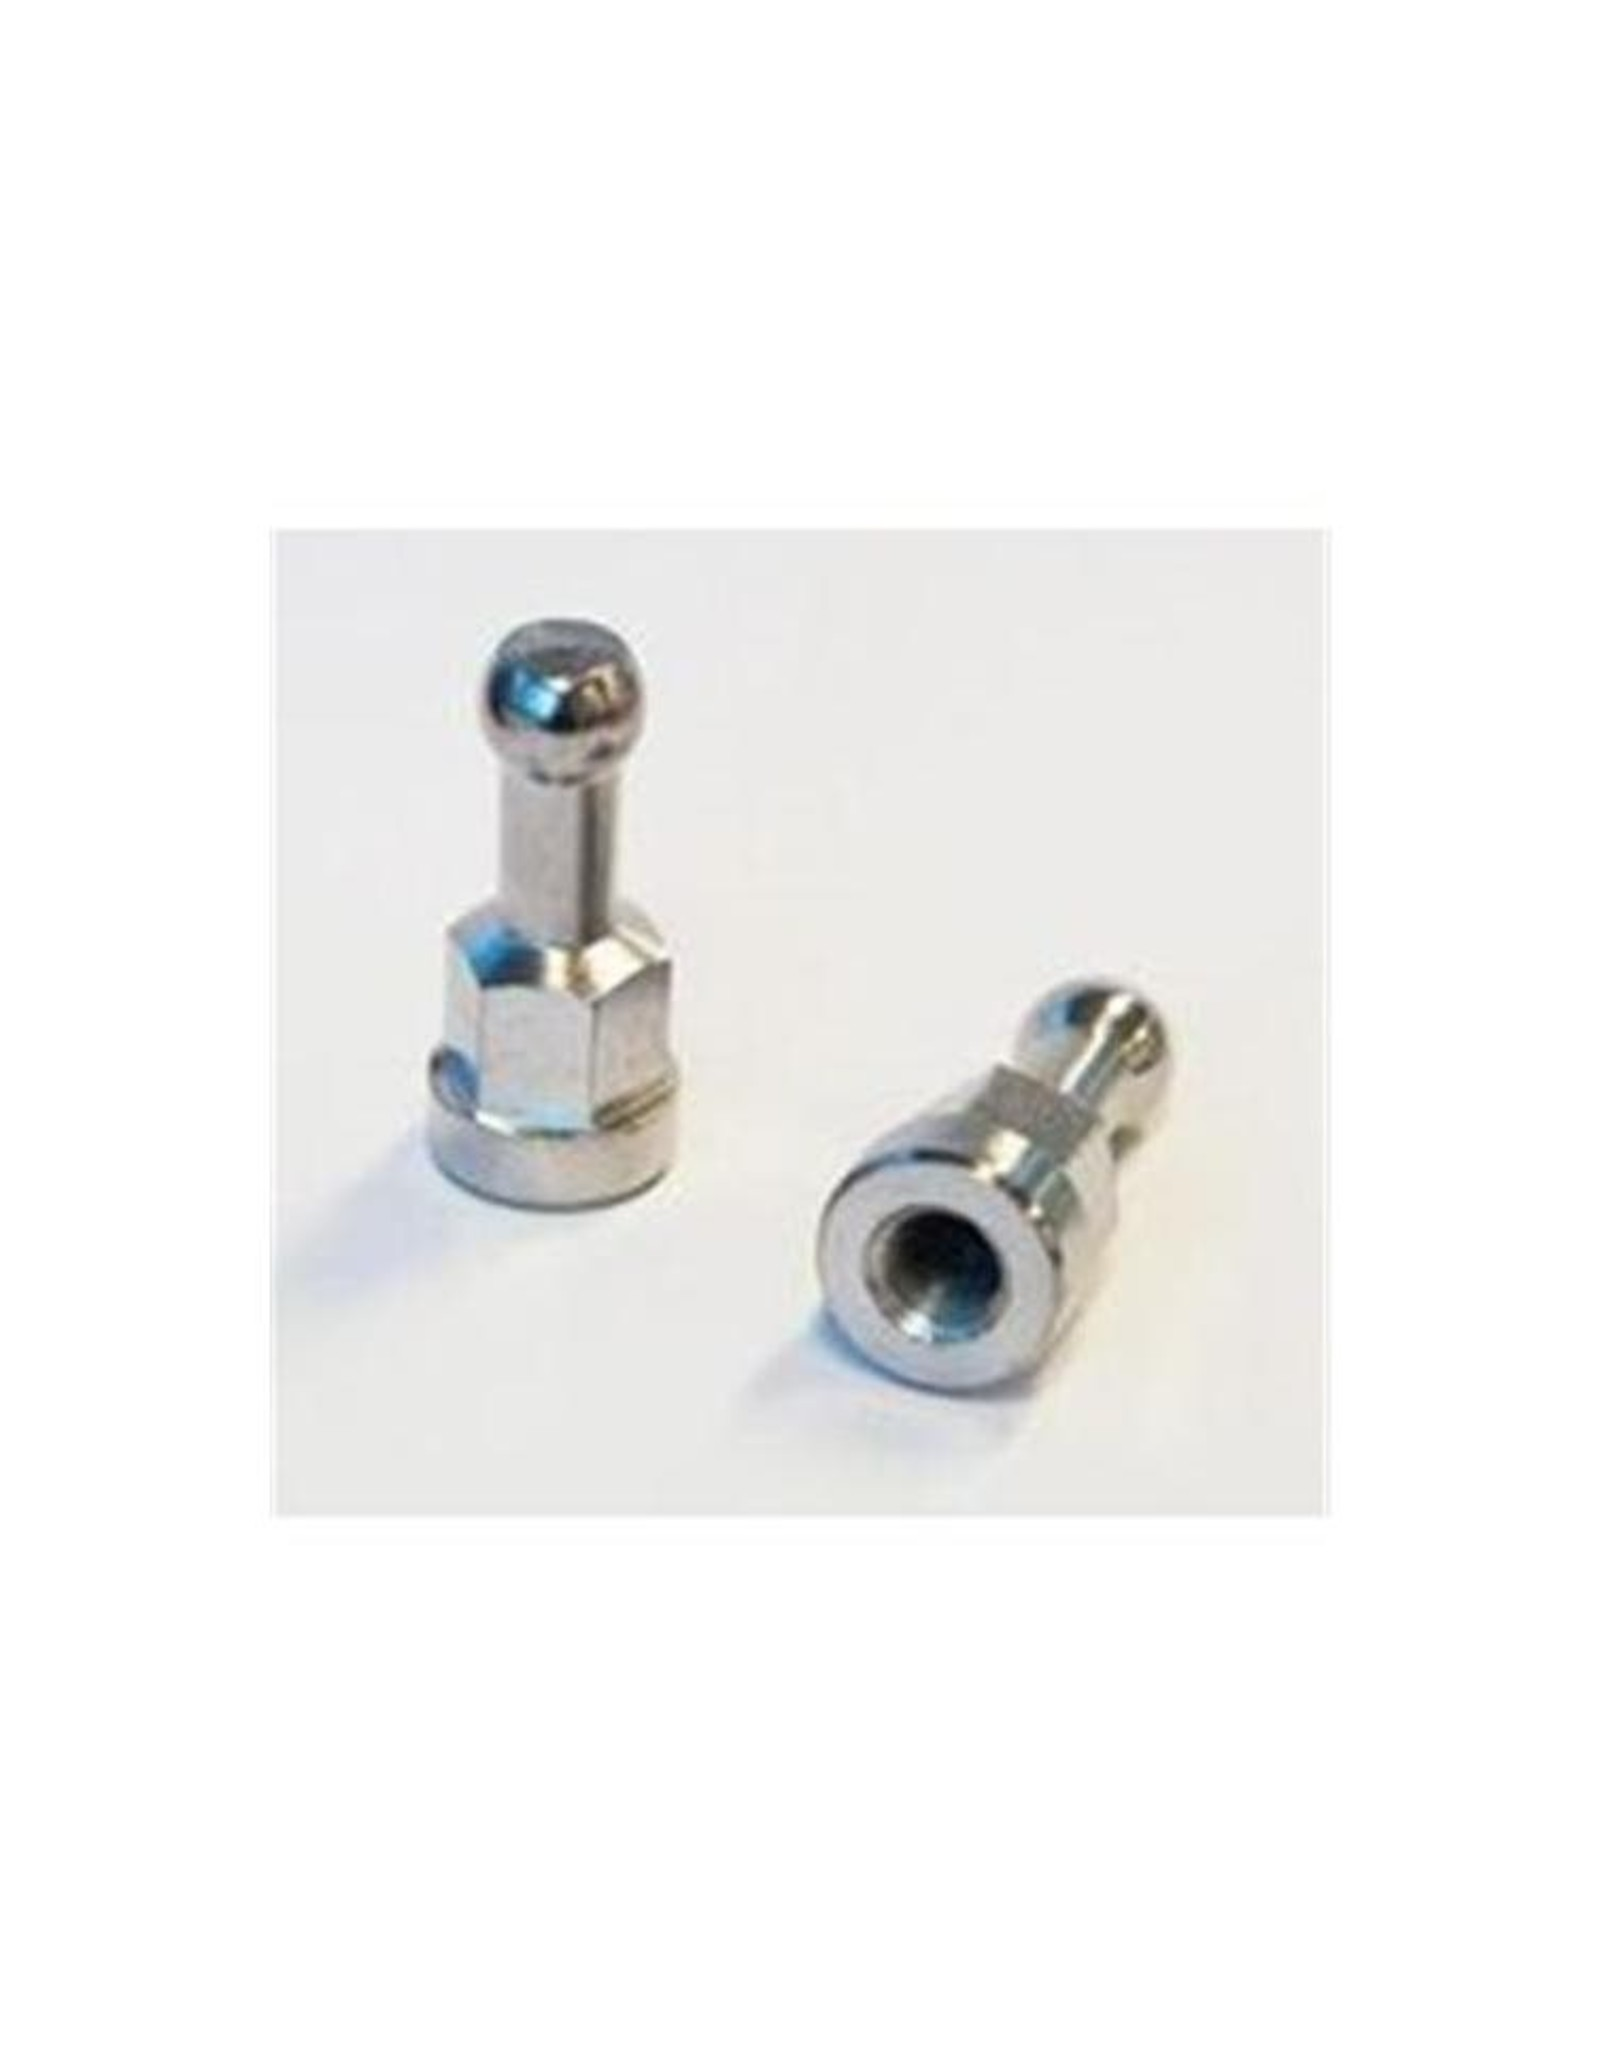 Axle Nuts (10 x 1 fits ISO & Japanese Solid Axles) to suit Single wheel Cargo Trailer ( 2pcs)